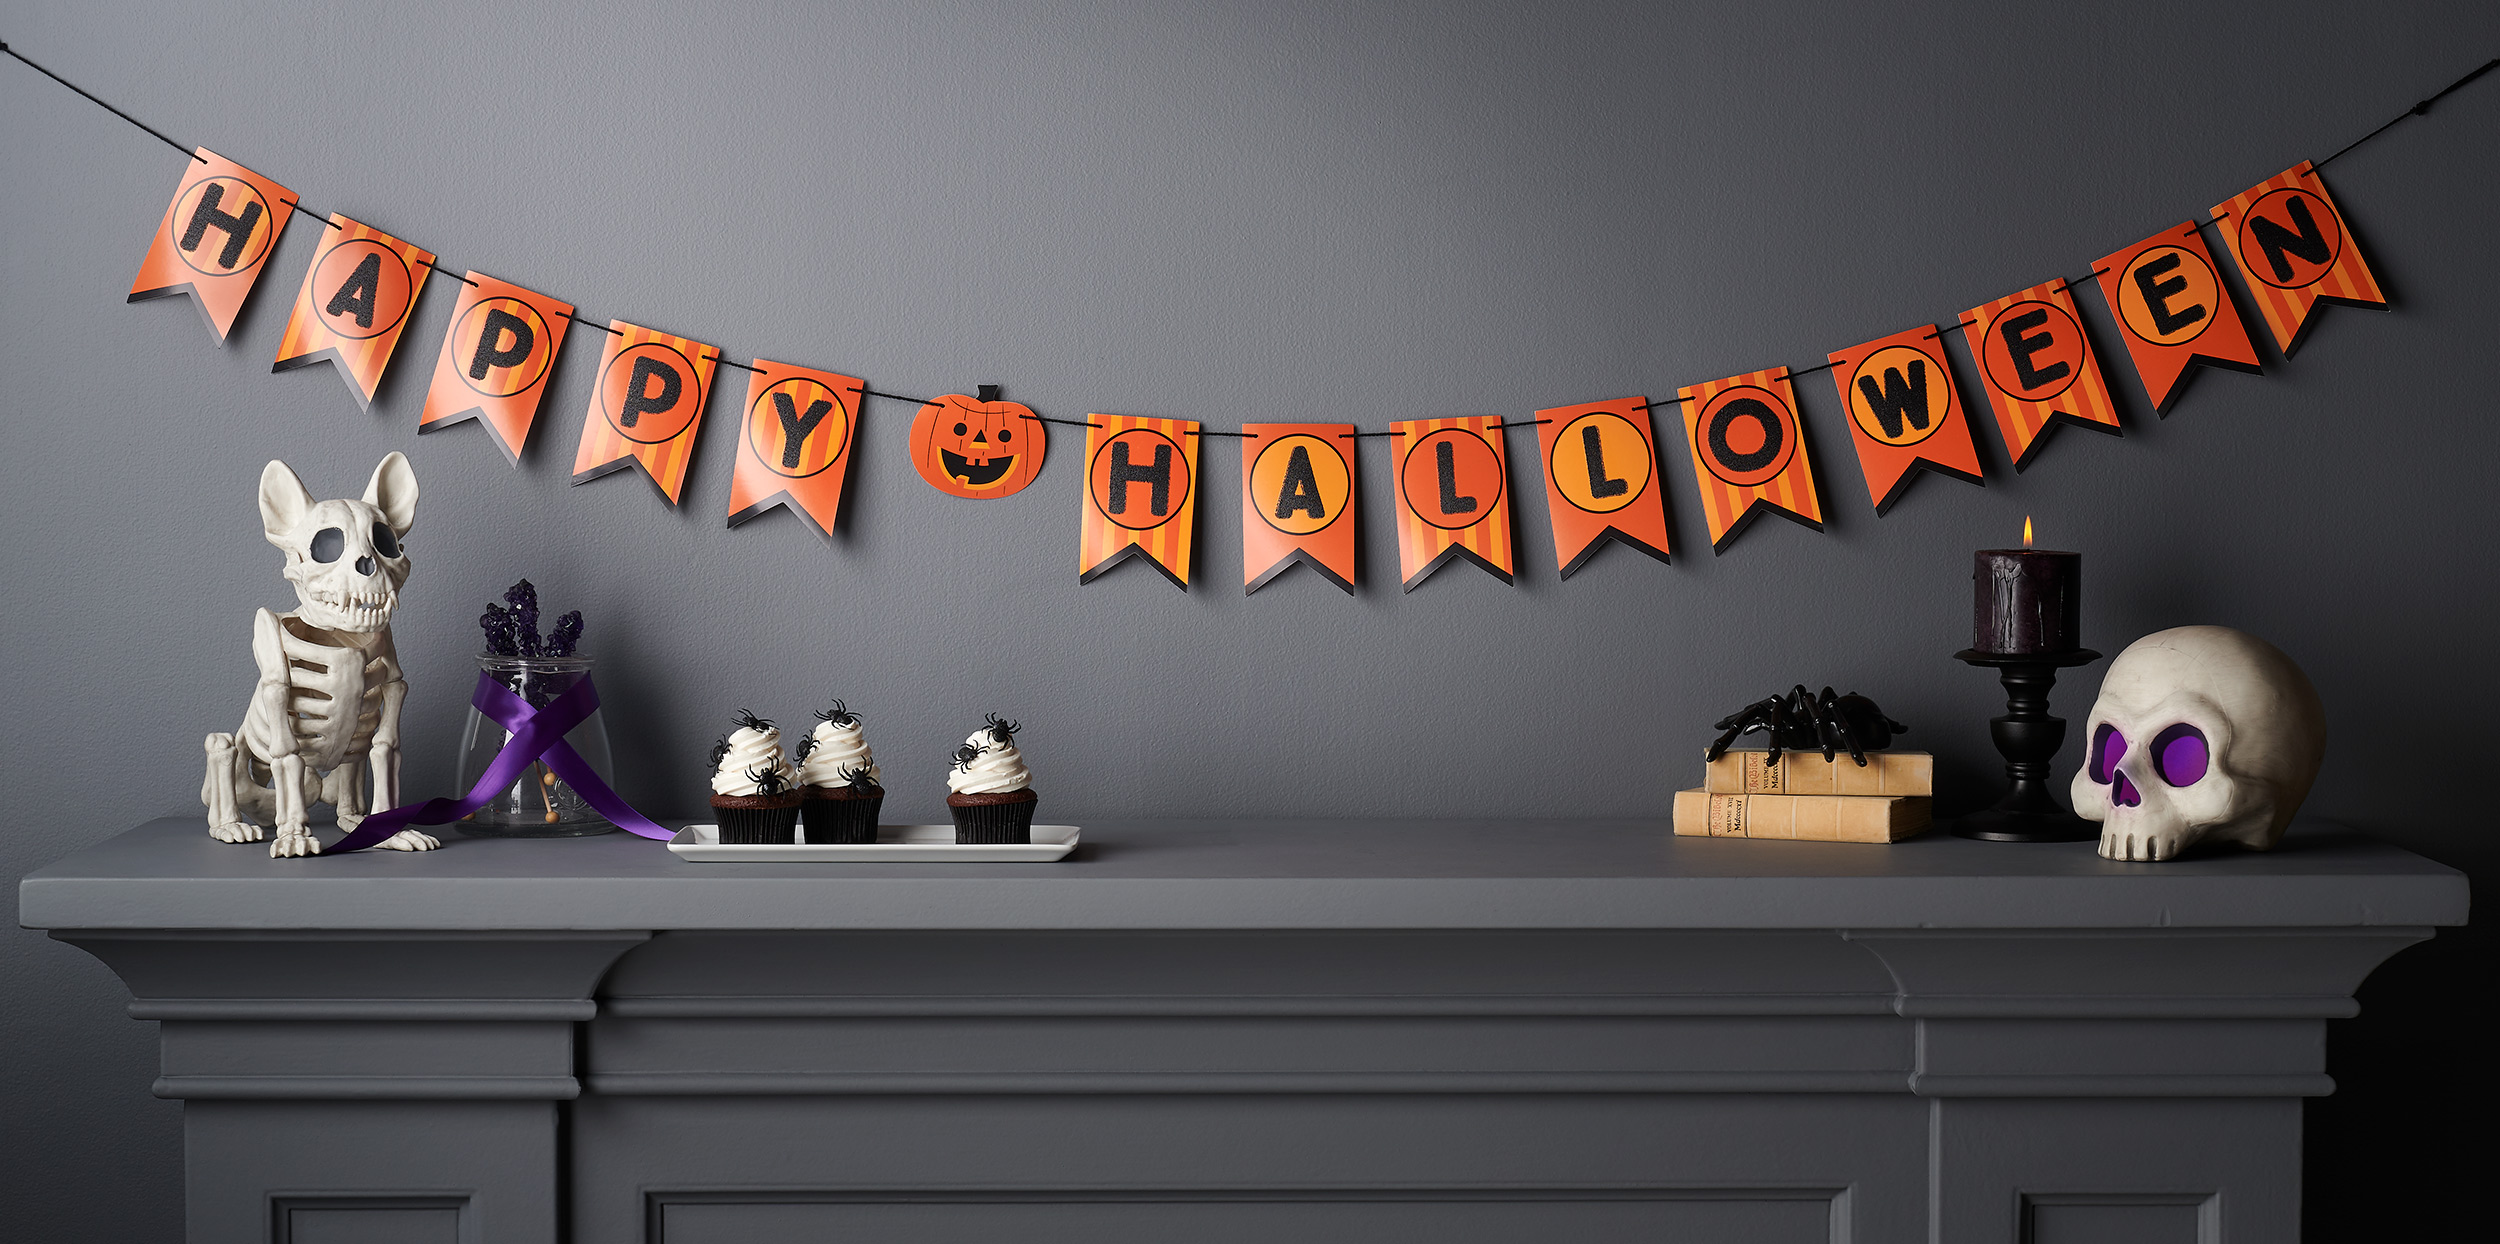 C-001217-01-025_240-43_0410_PaperBanner_Garland_HappyHalloween_Pumpkin